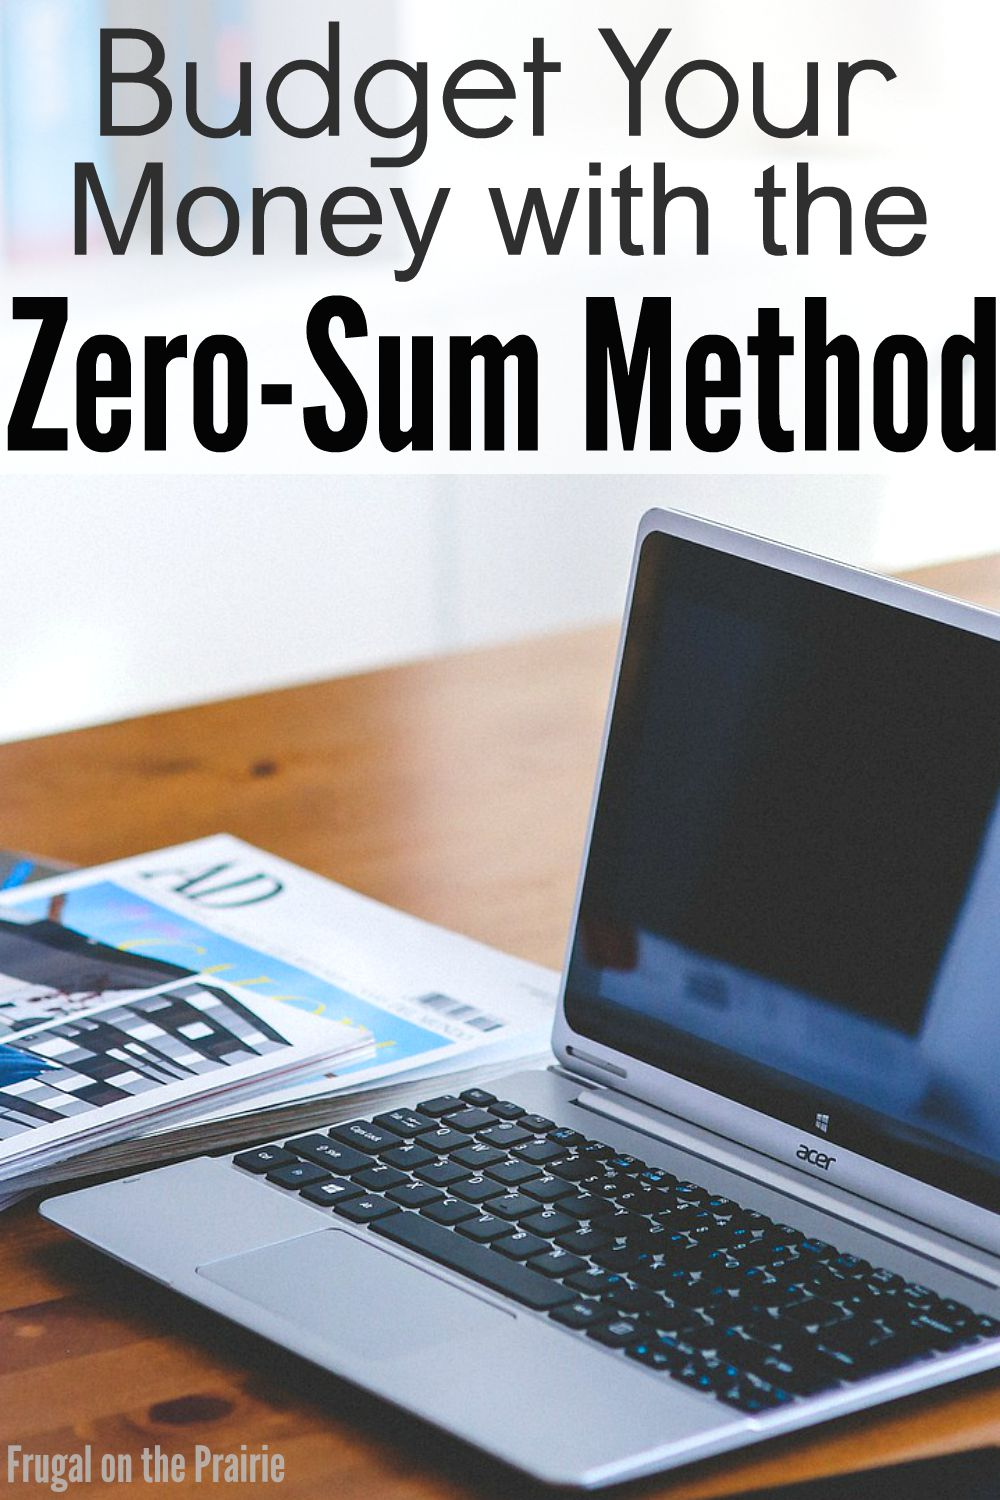 Are you tired of living paycheck to paycheck and never having any savings? Budget your money with the Zero-Sum Method to take control of your spending!